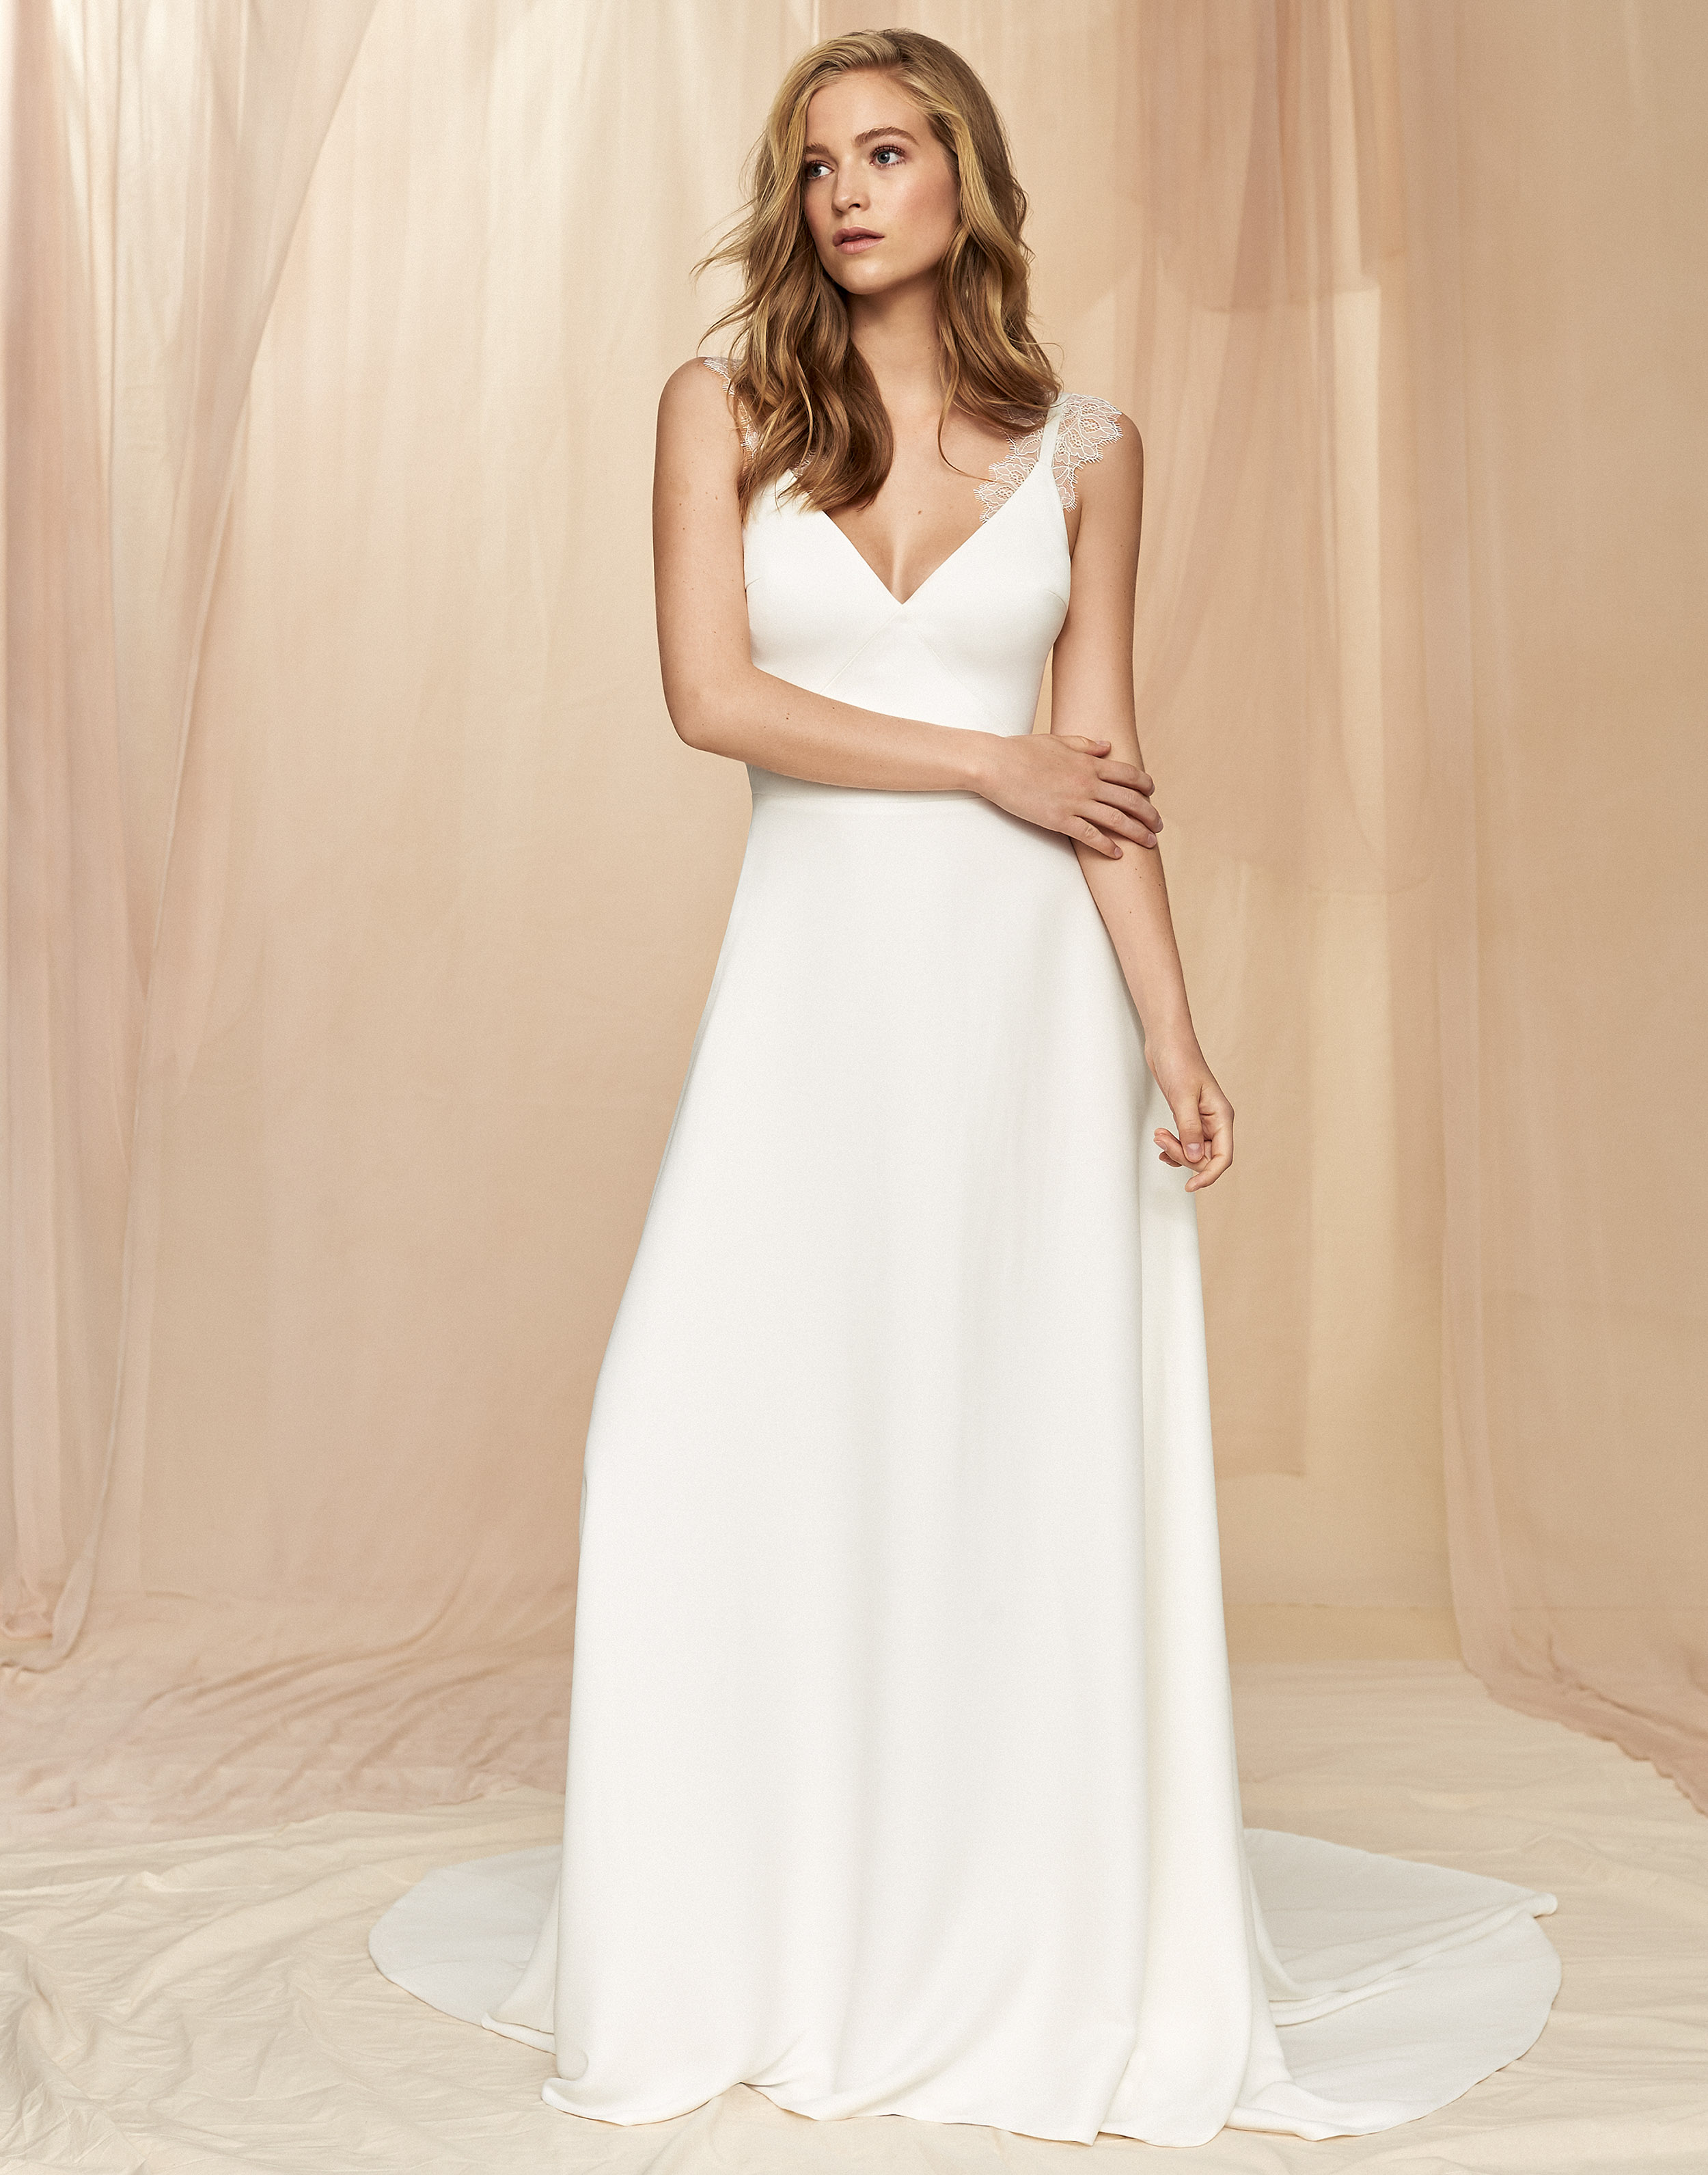 Savannah Miller Bridal Fall 2020